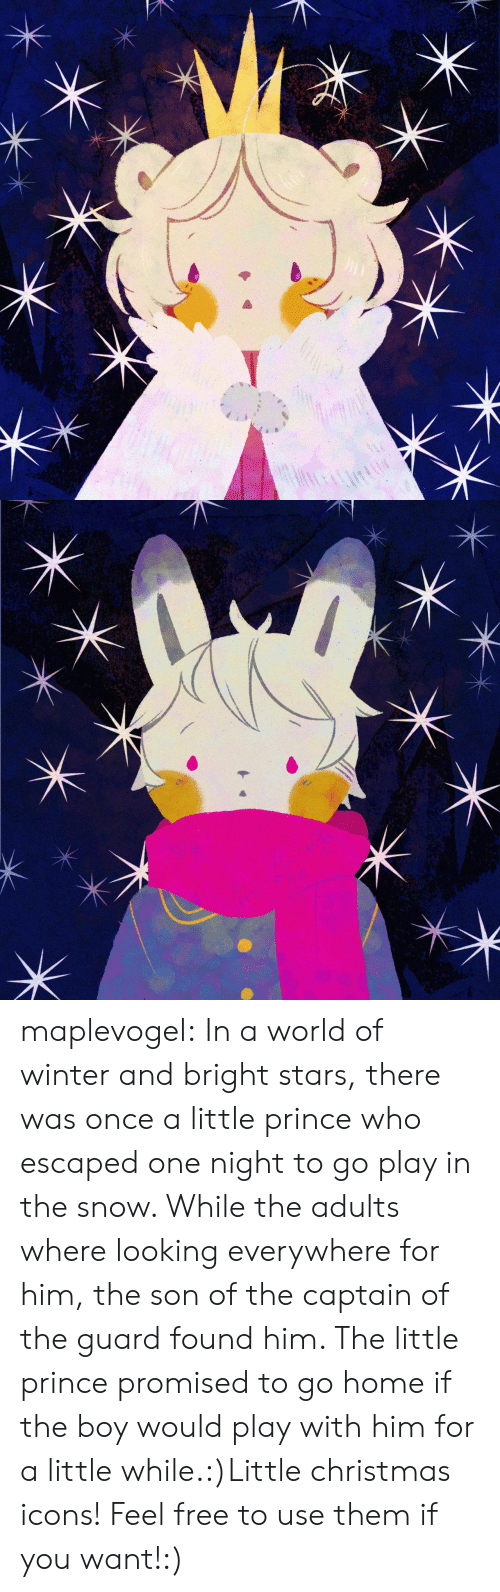 Christmas, Prince, and Target: maplevogel:  In a world of winter and bright stars, there was once a little prince who escaped one night to go play in the snow. While the adults where looking everywhere for him, the son of the captain of the guard found him. The little prince promised to go home if the boy would play with him for a little while.:)Little christmas icons! Feel free to use them if you want!:)